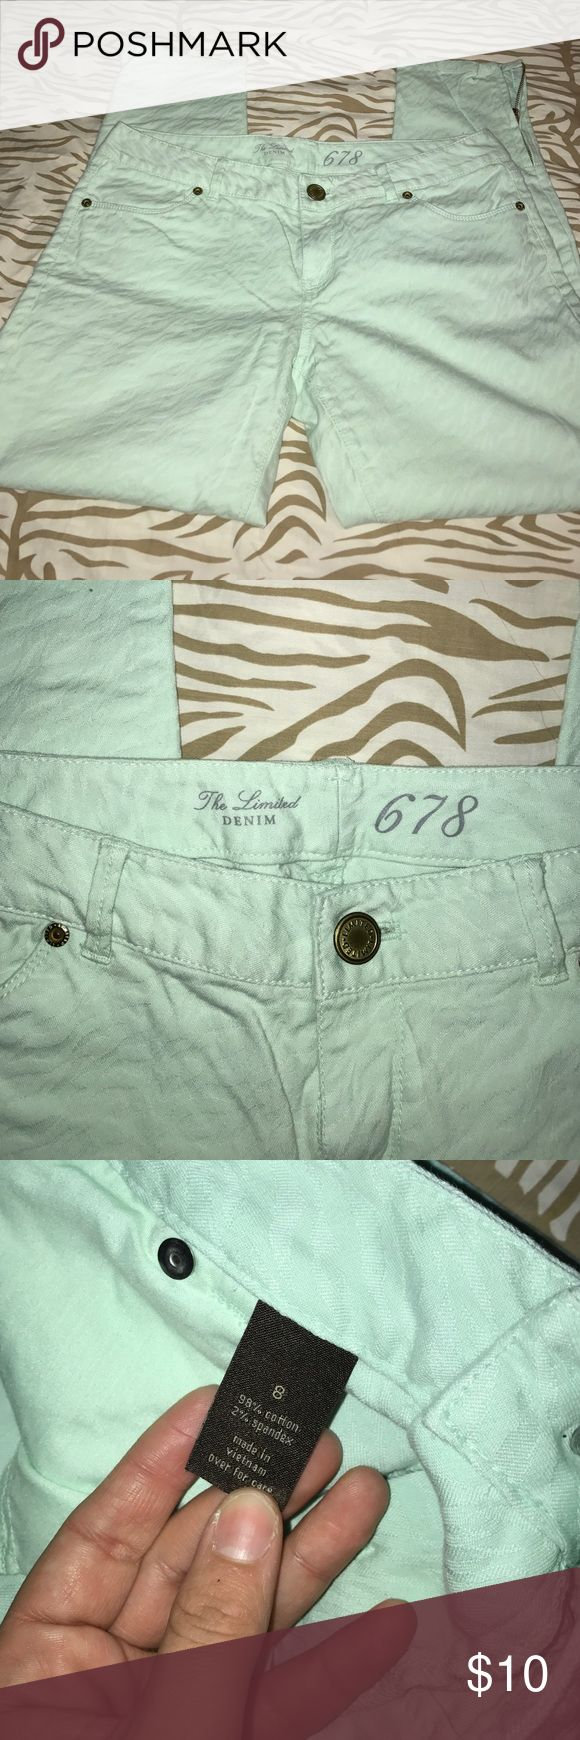 Mint Green Jeans Mint Green Zipper Ankle Jeans The Limited Jeans Skinny